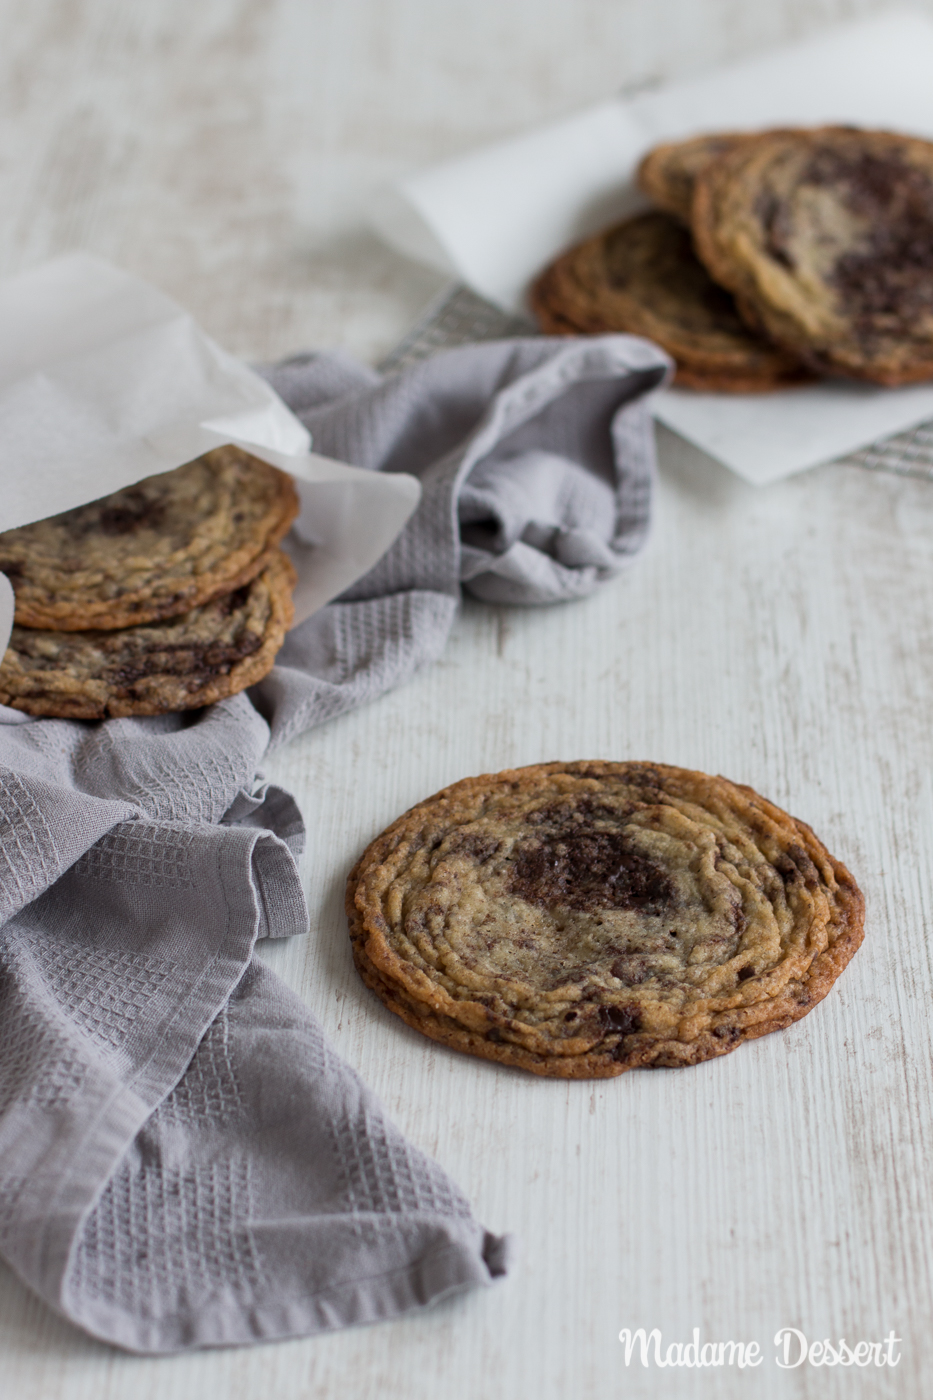 Crispy Crinkled Chocolate Chip Cookies | Madame Dessert